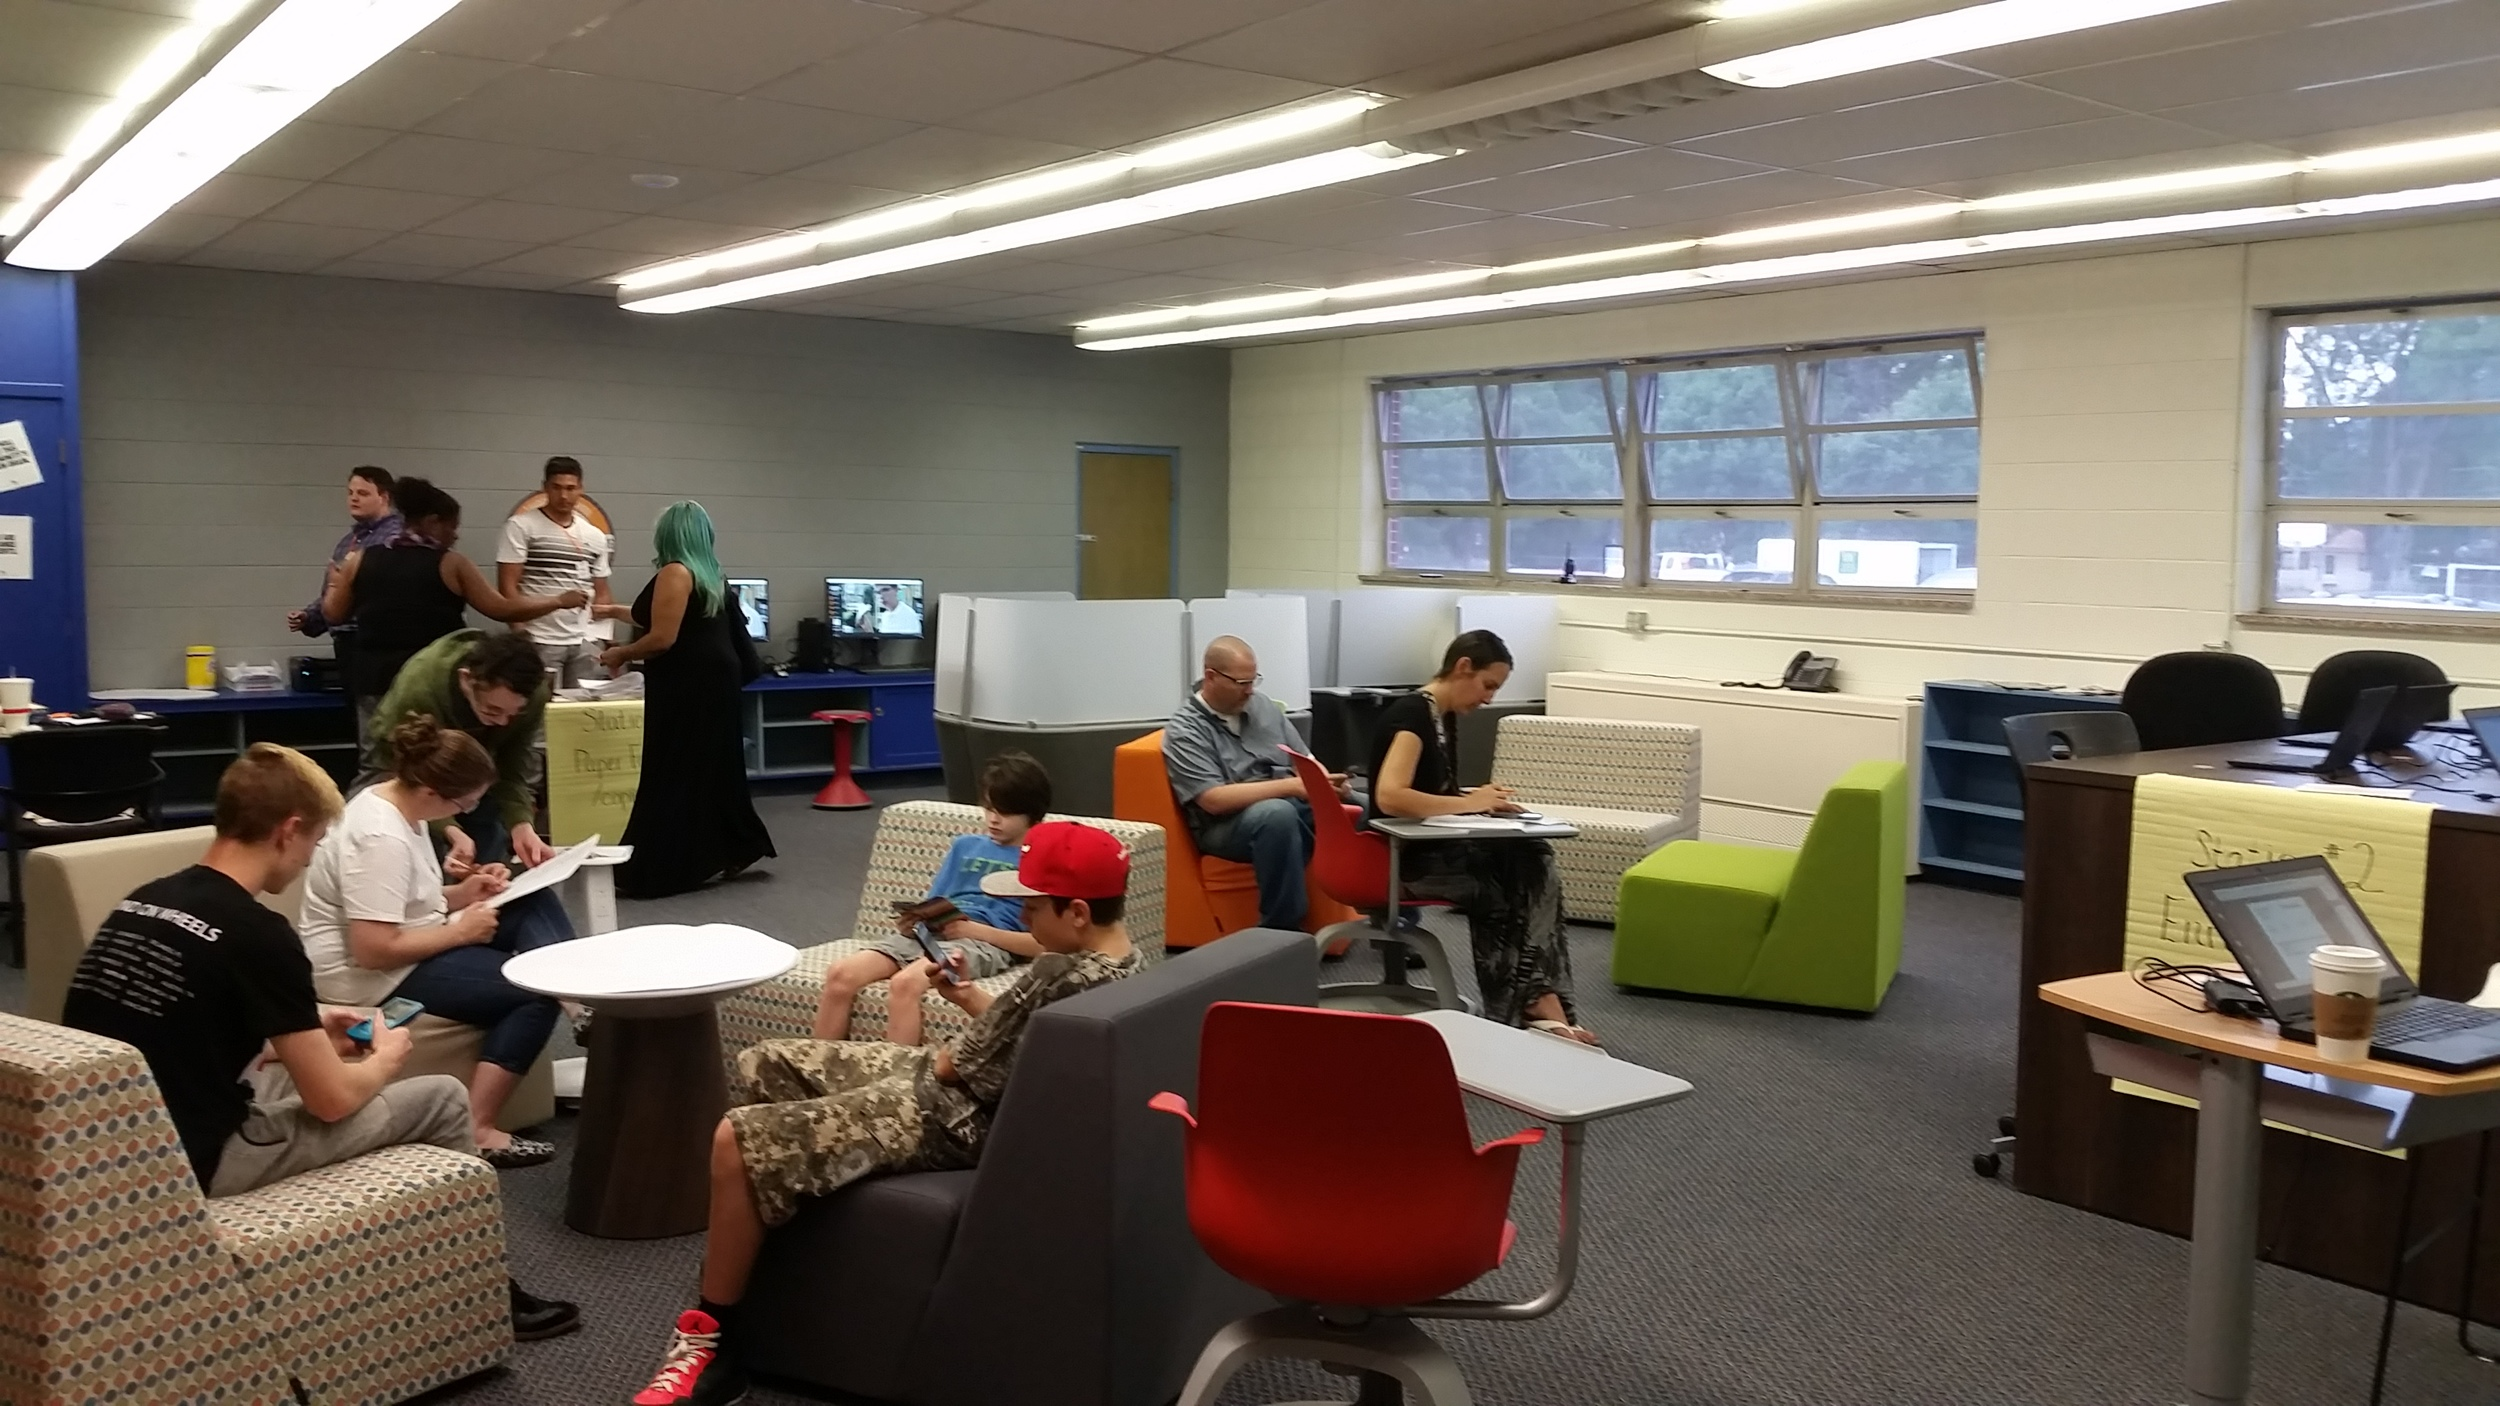 Current LHS Collaboration Space